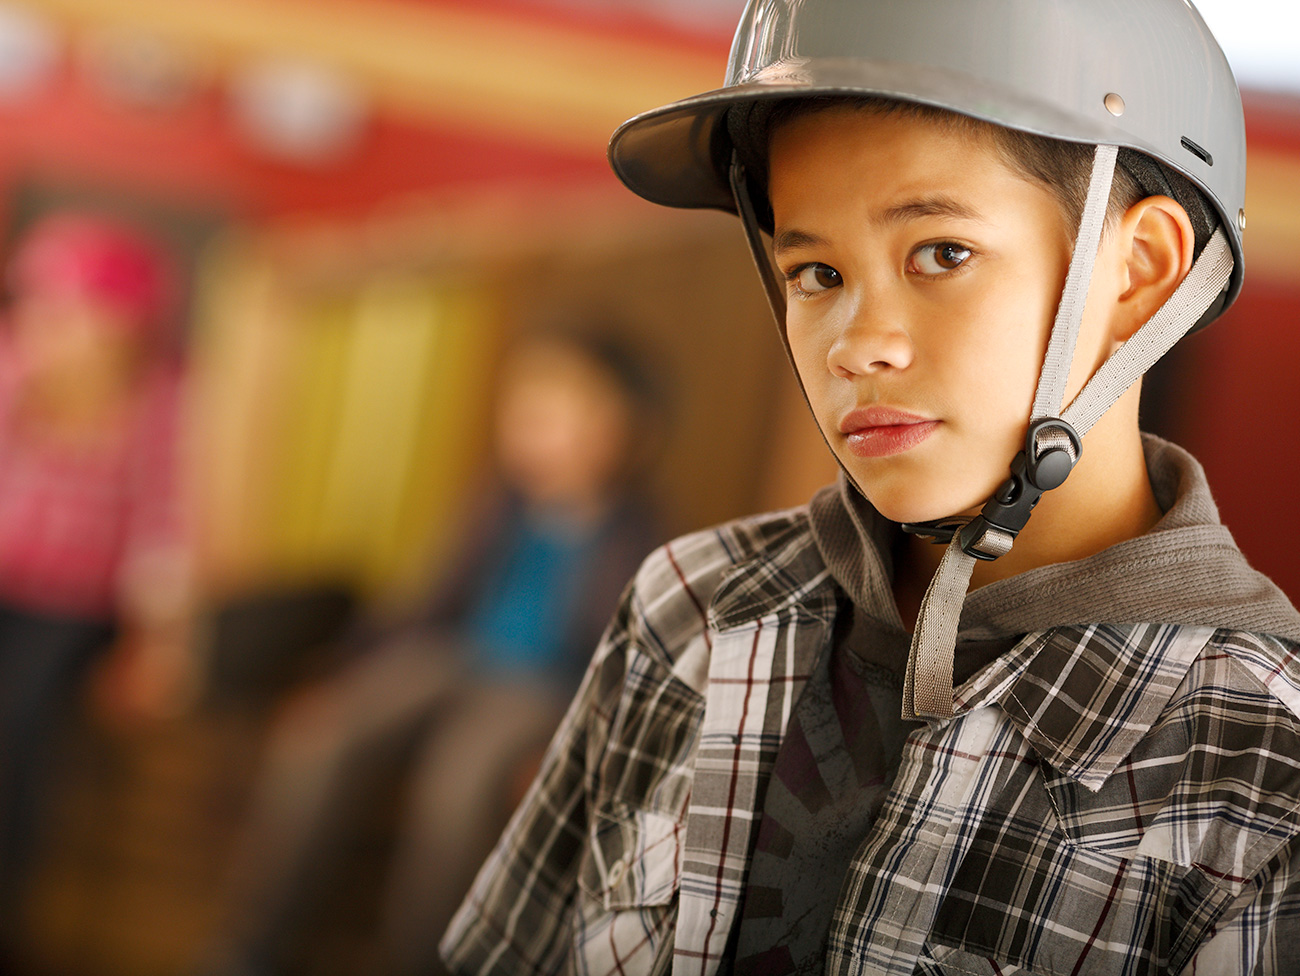 Child wearing skateboard helmet